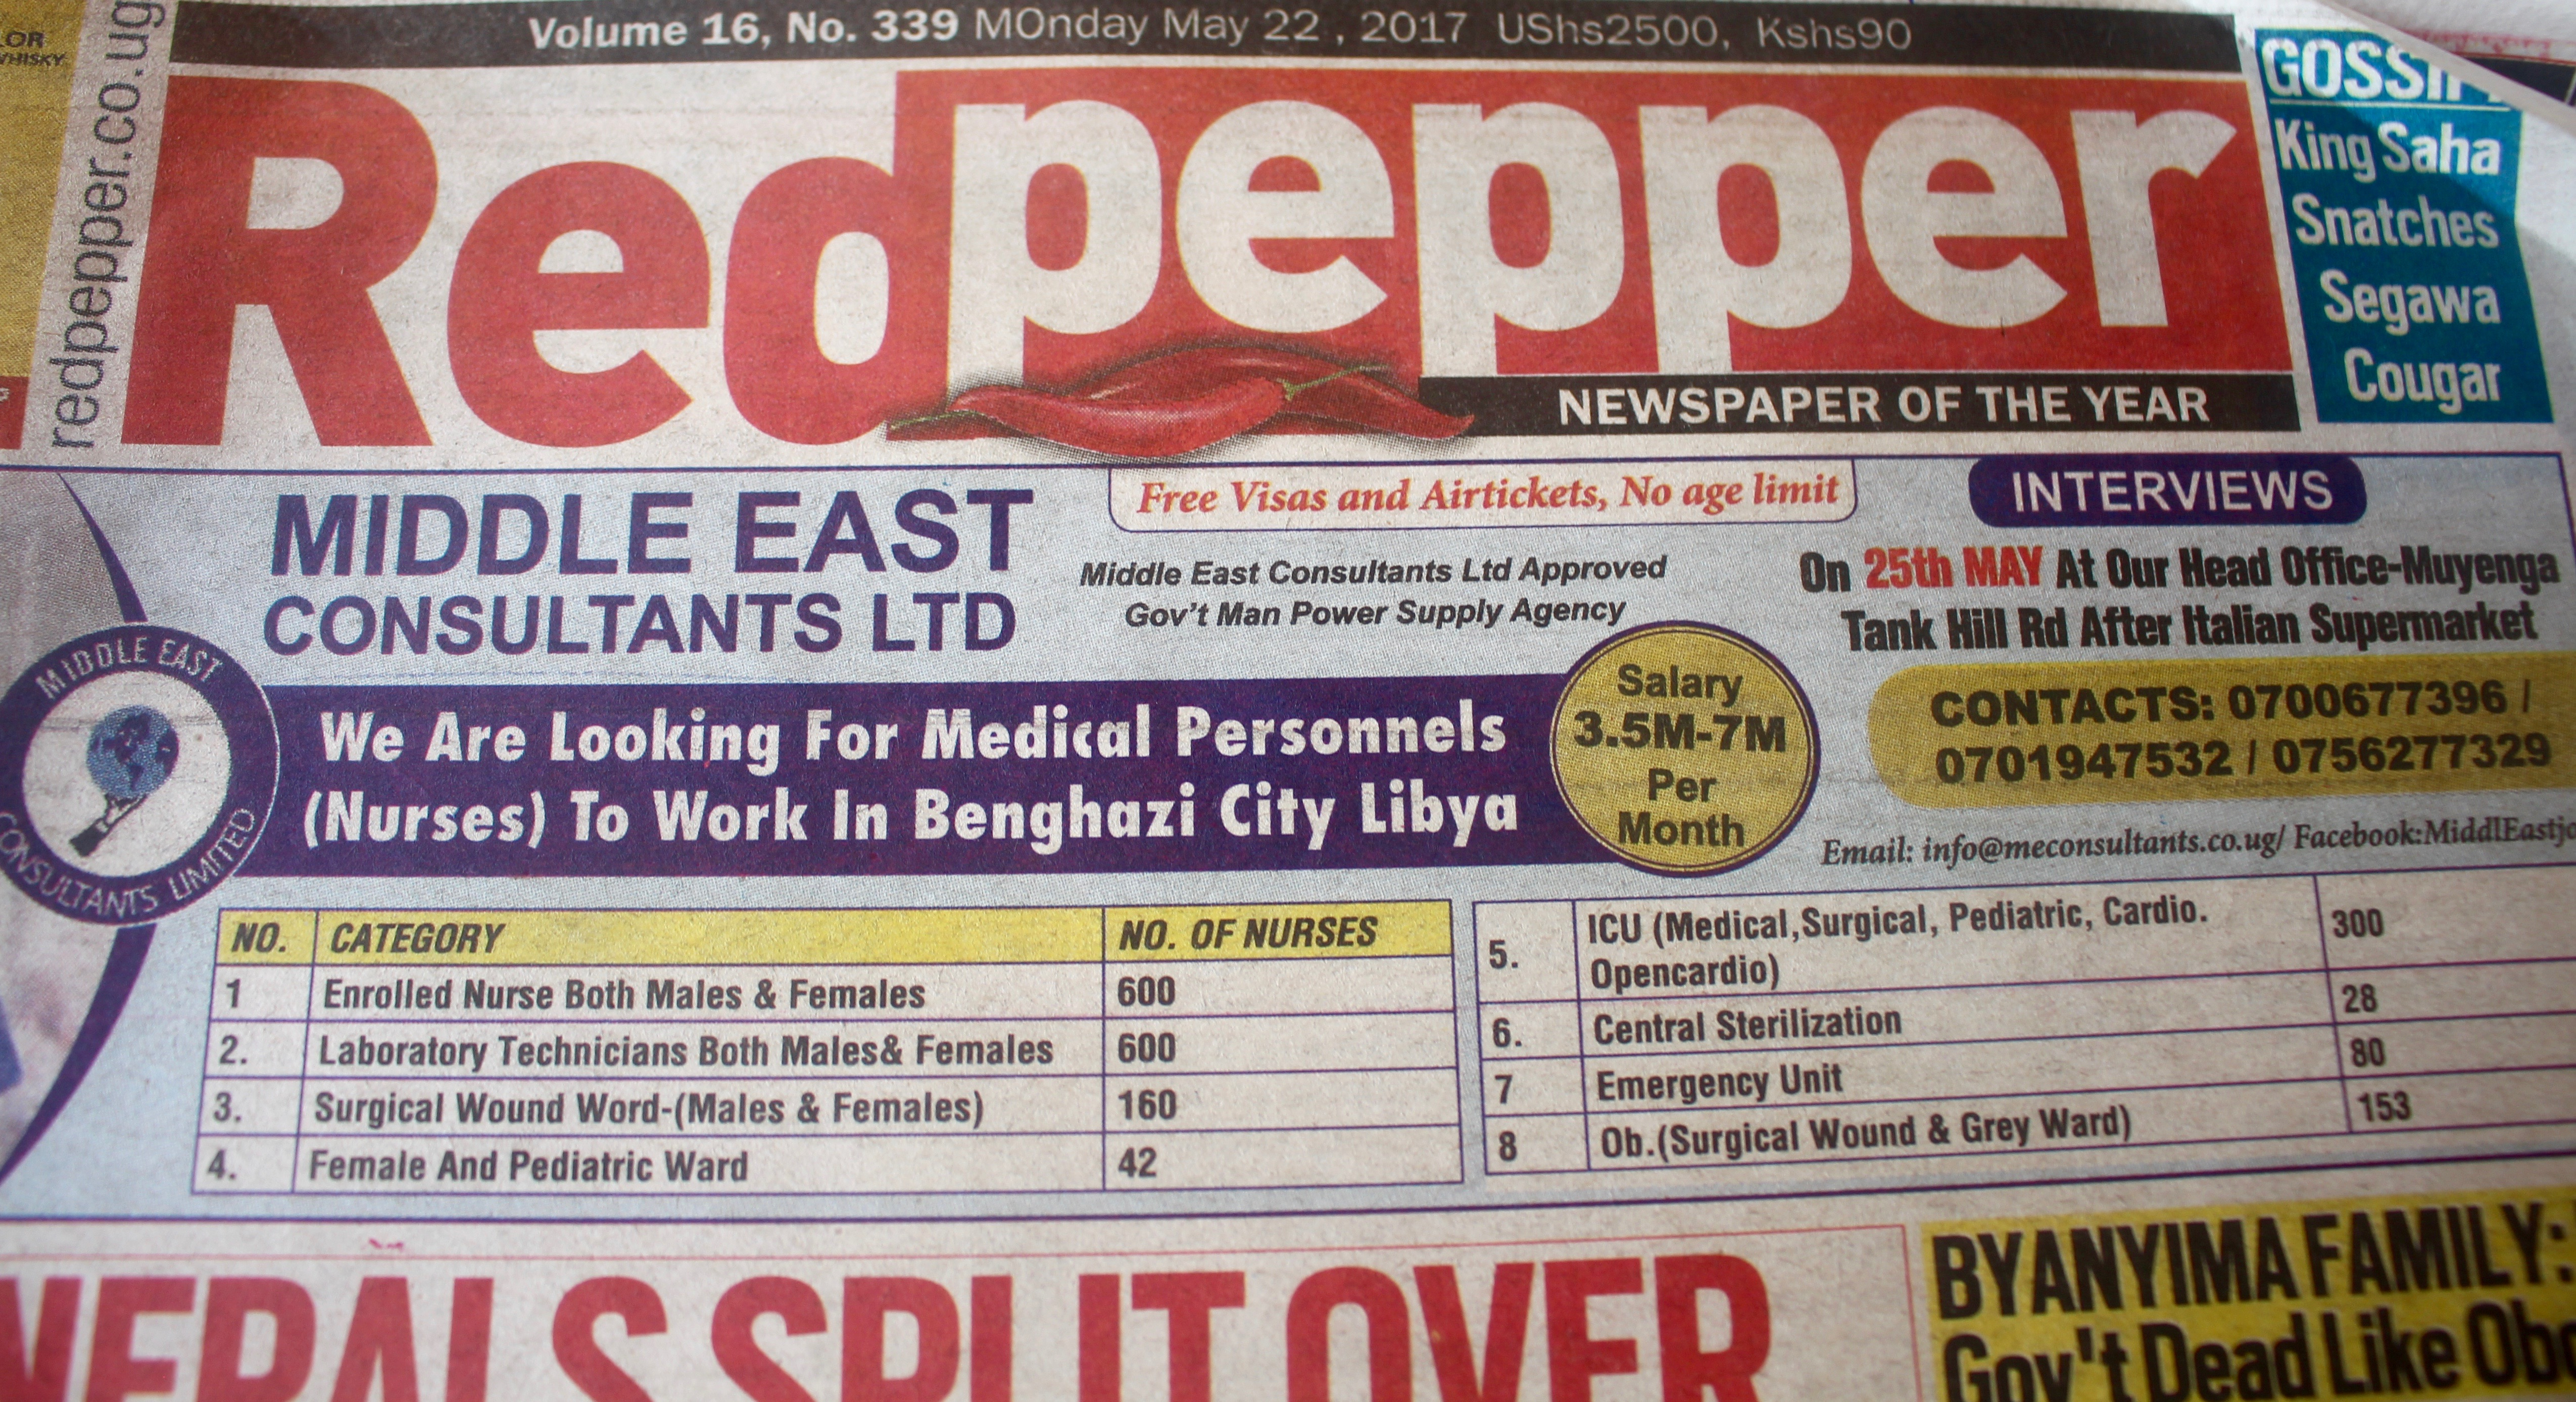 An ad run by recruiting company MEC calls for Ugandan medical personnel to work in Libya.